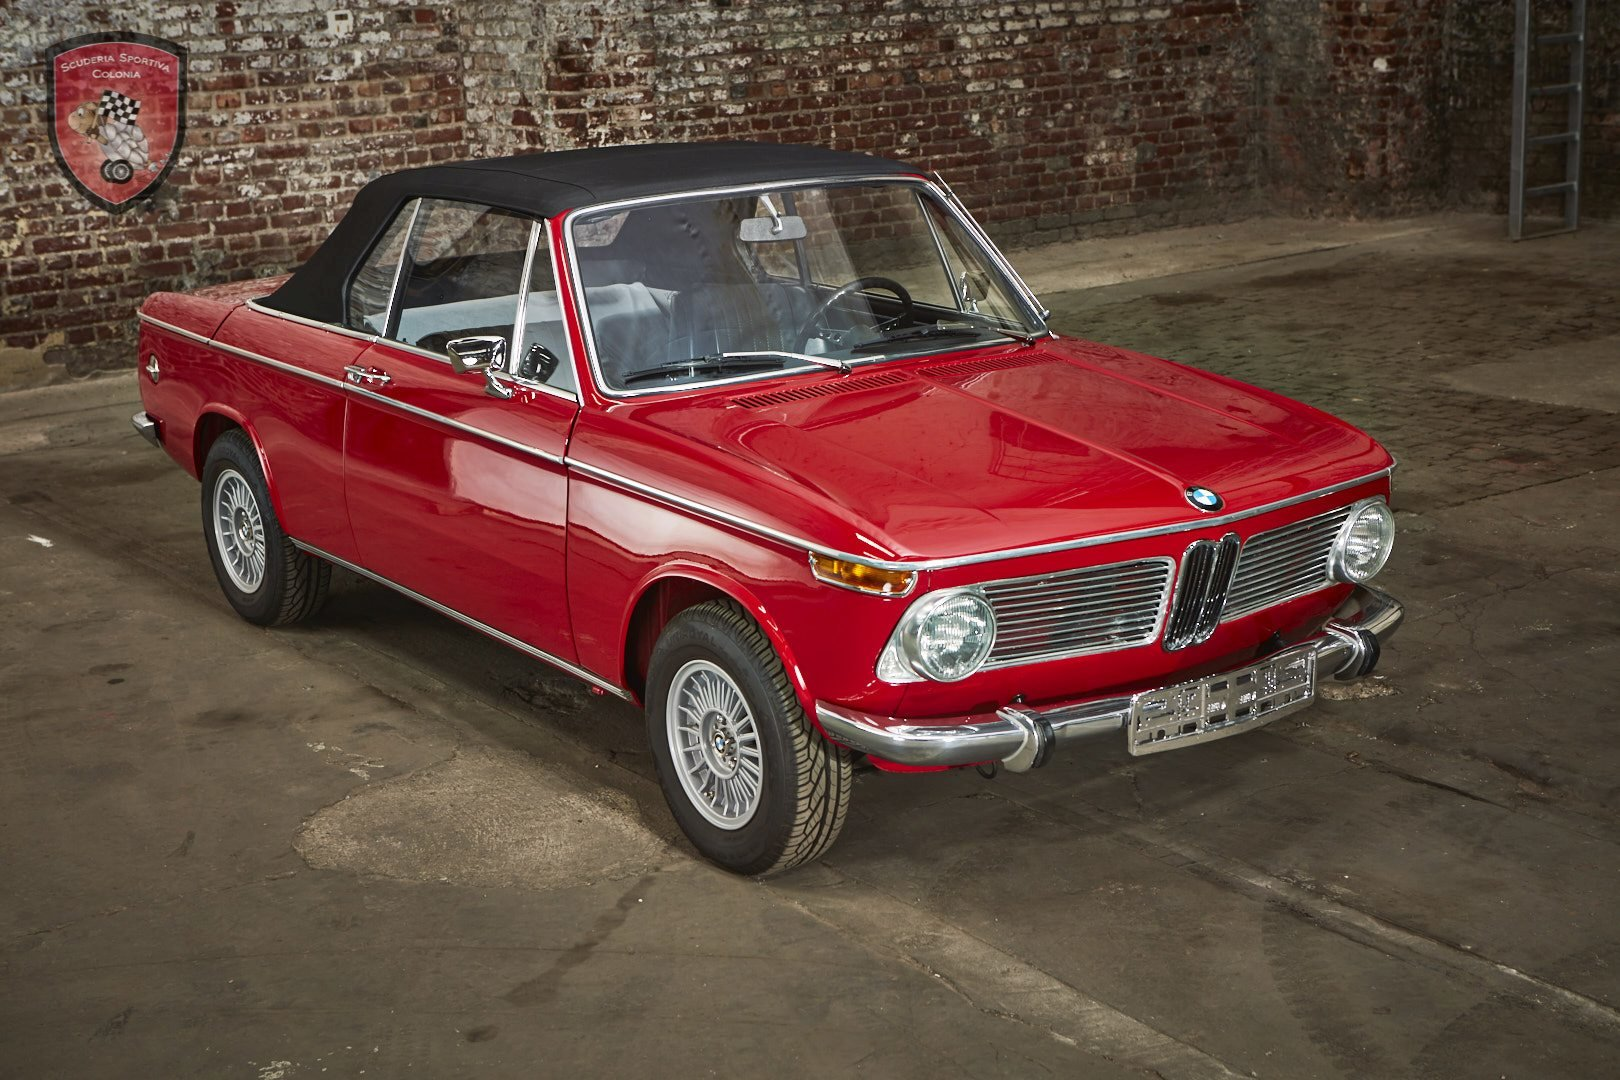 1970 Nice BMW 1600 cabriolet  For Sale (picture 3 of 6)